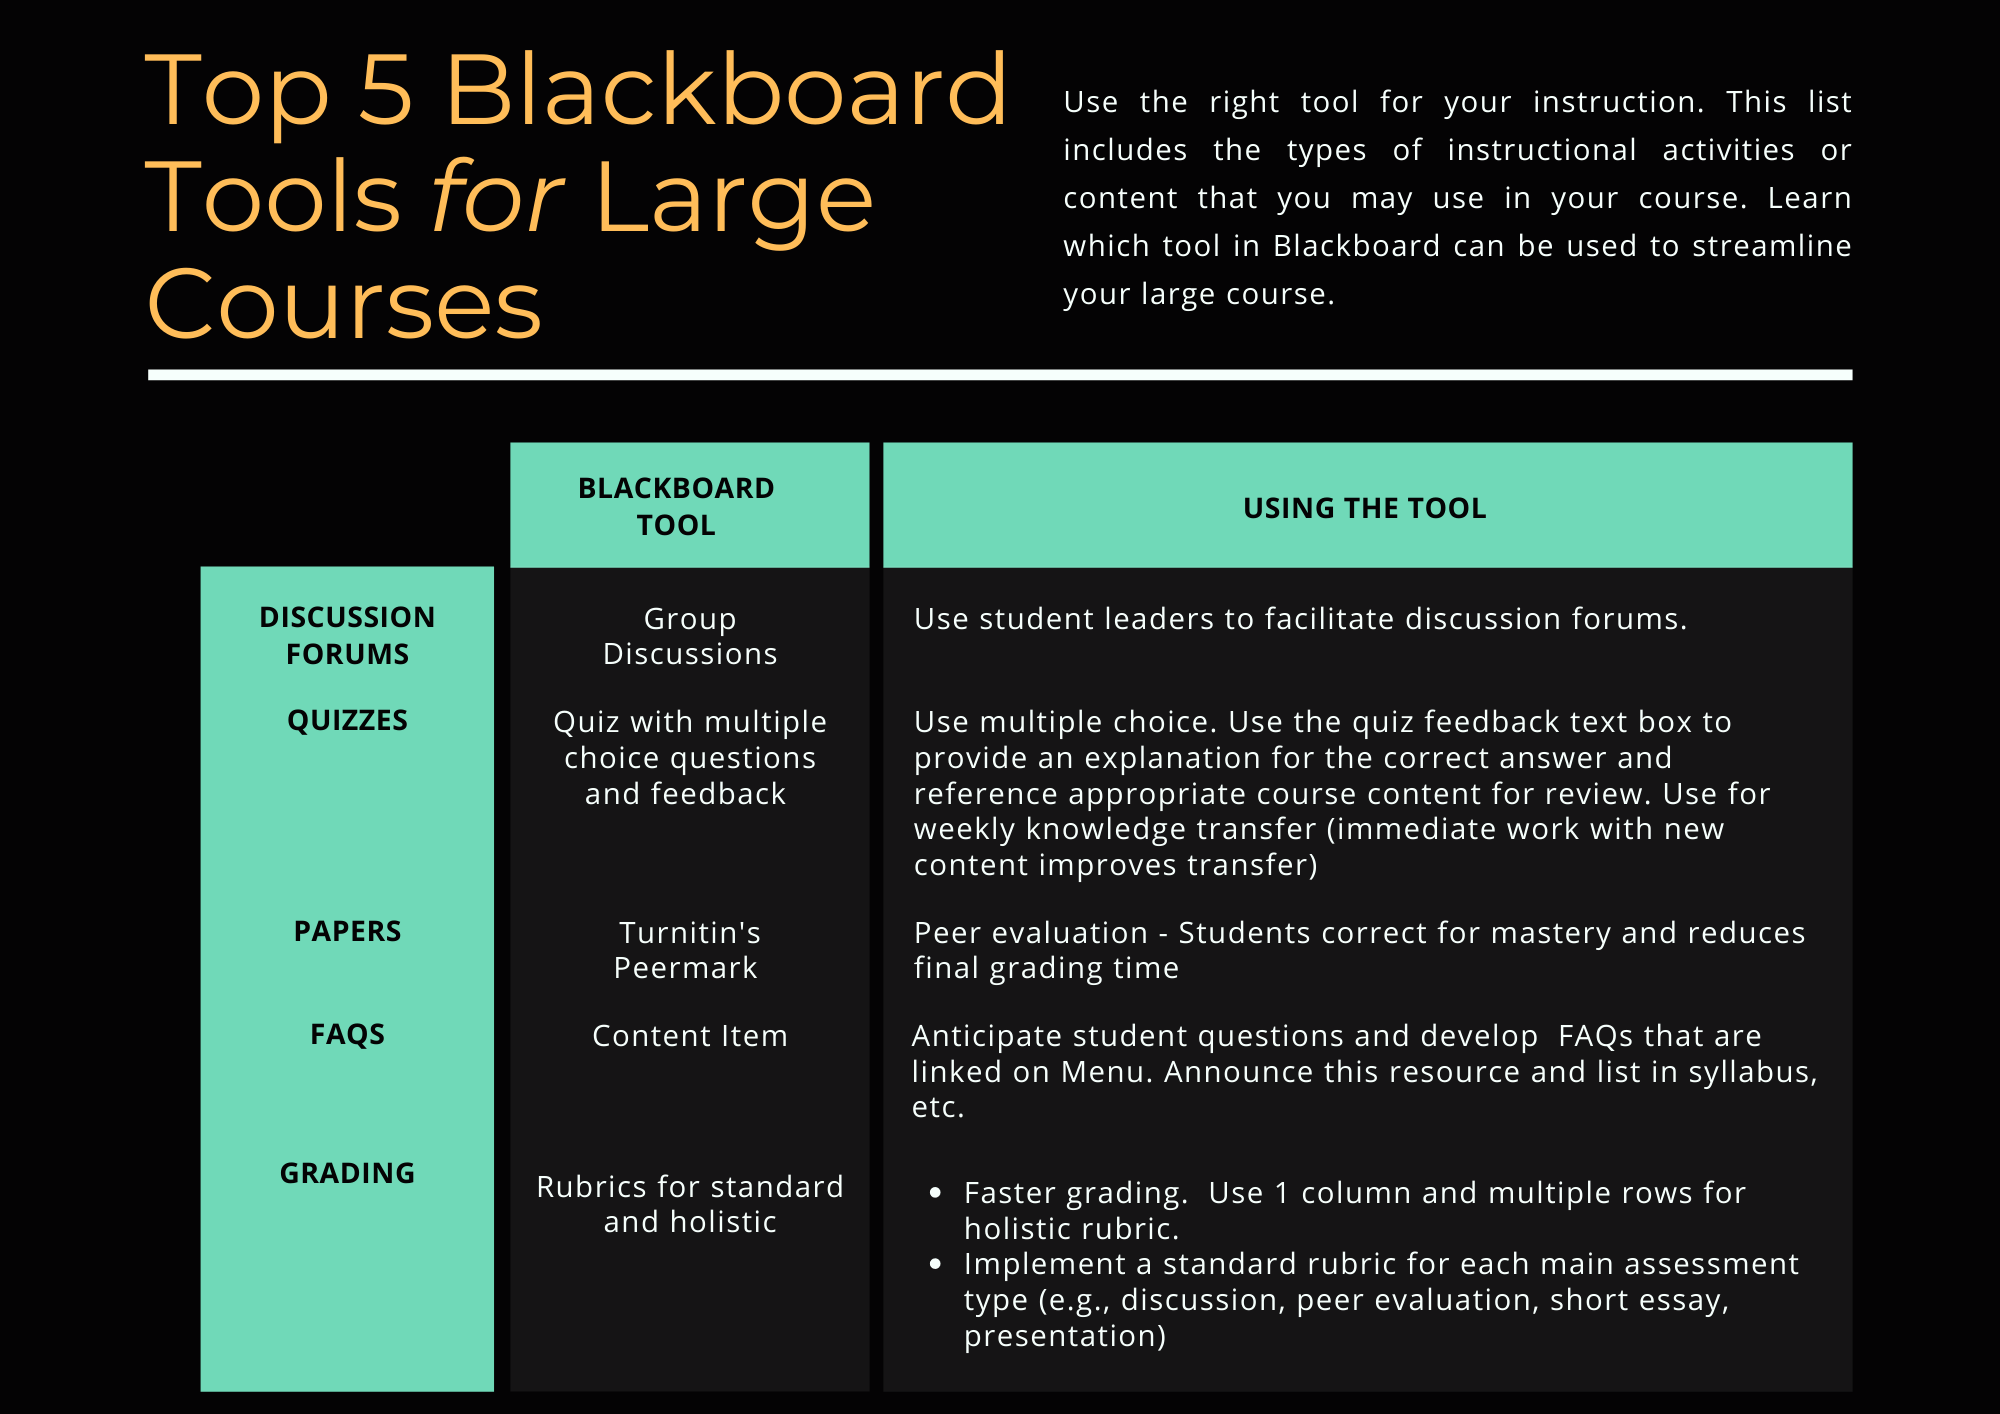 Top 5 Blackboard Tools for Large Classes